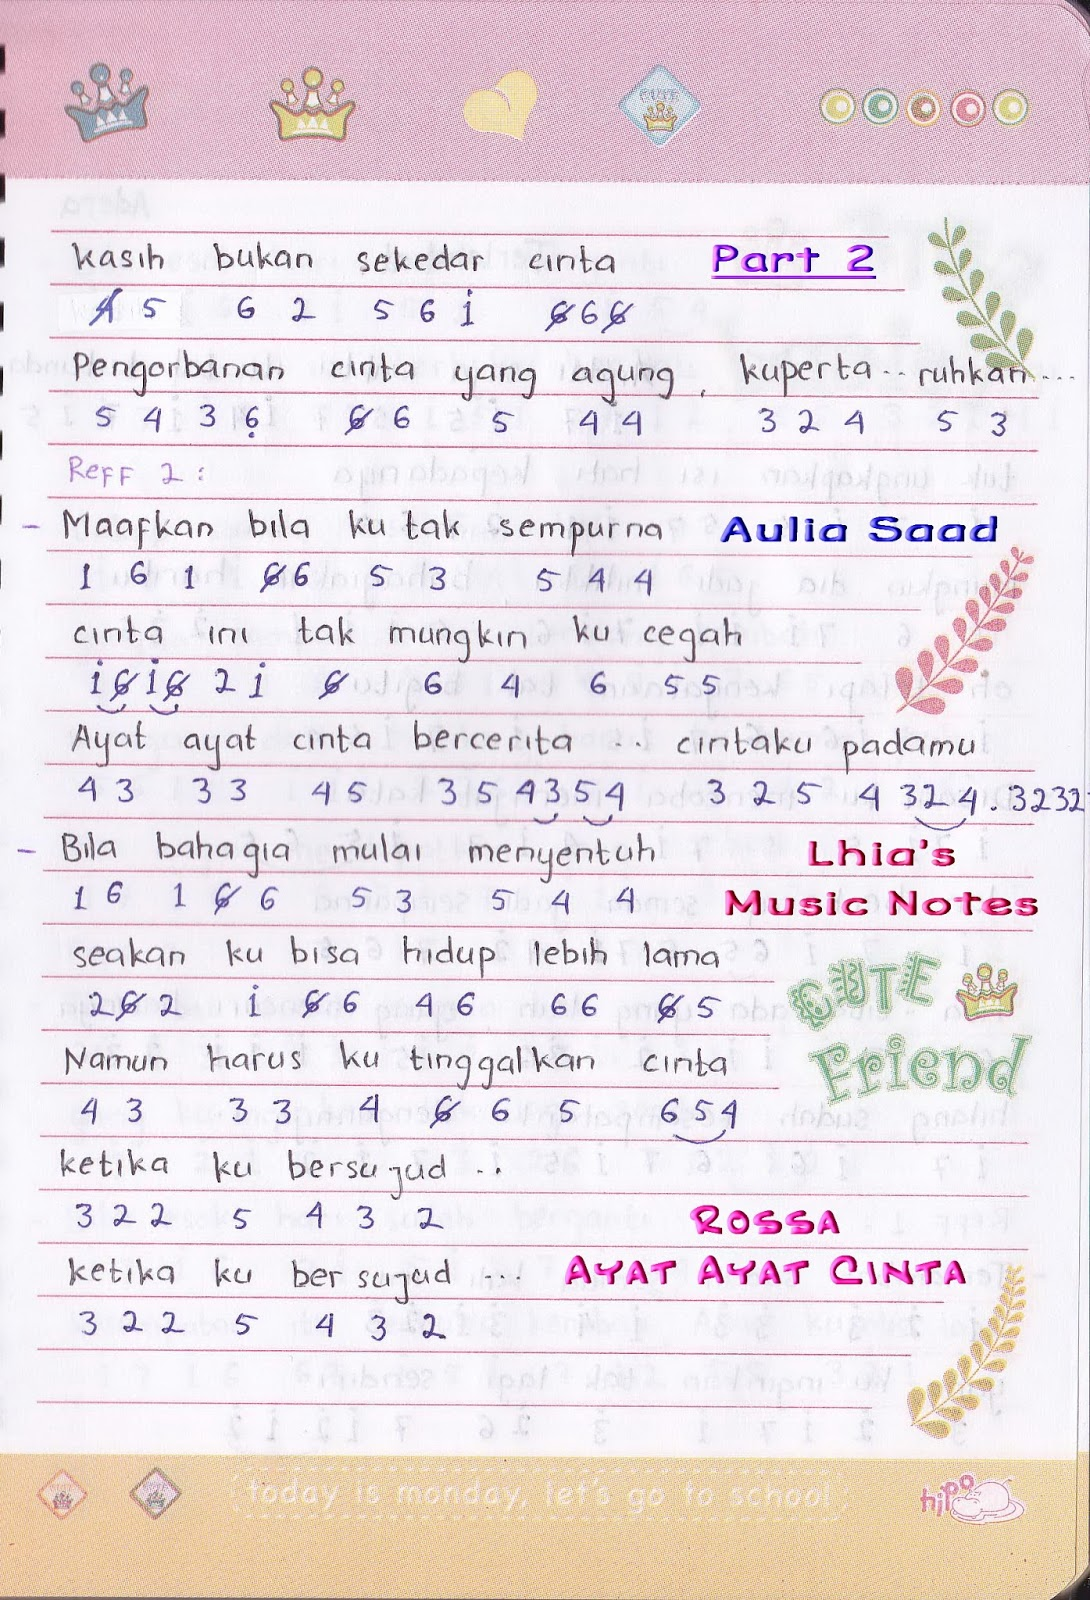 Download Lagu Ayat Cinta : download, cinta, Download, Rossa, Cinta